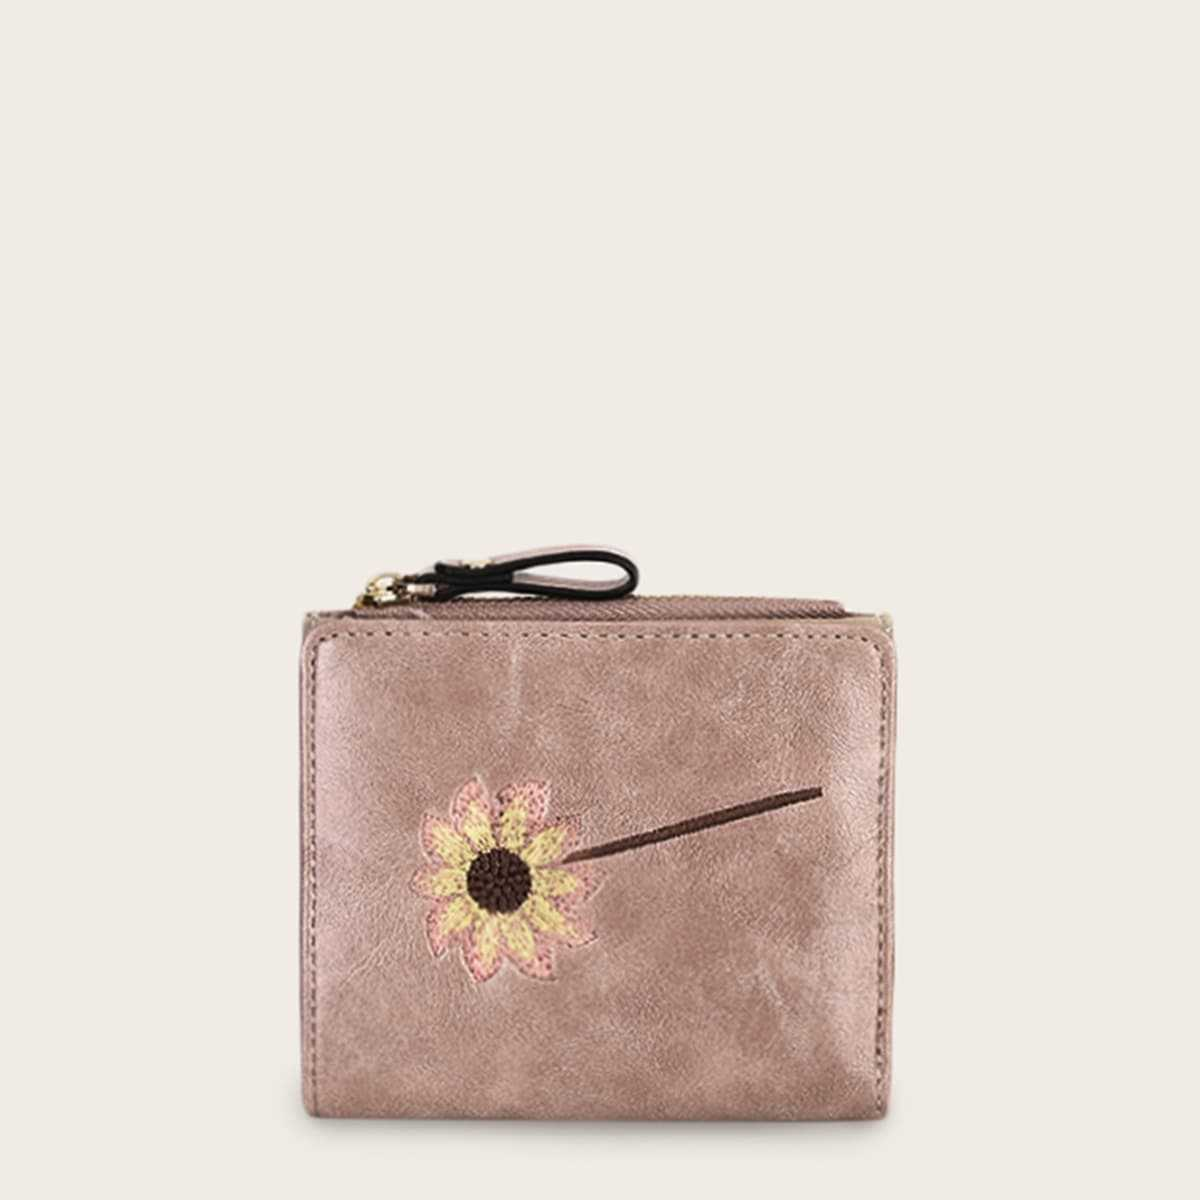 Floral Embroidered Fold Over Purse in Pink by ROMWE on GOOFASH